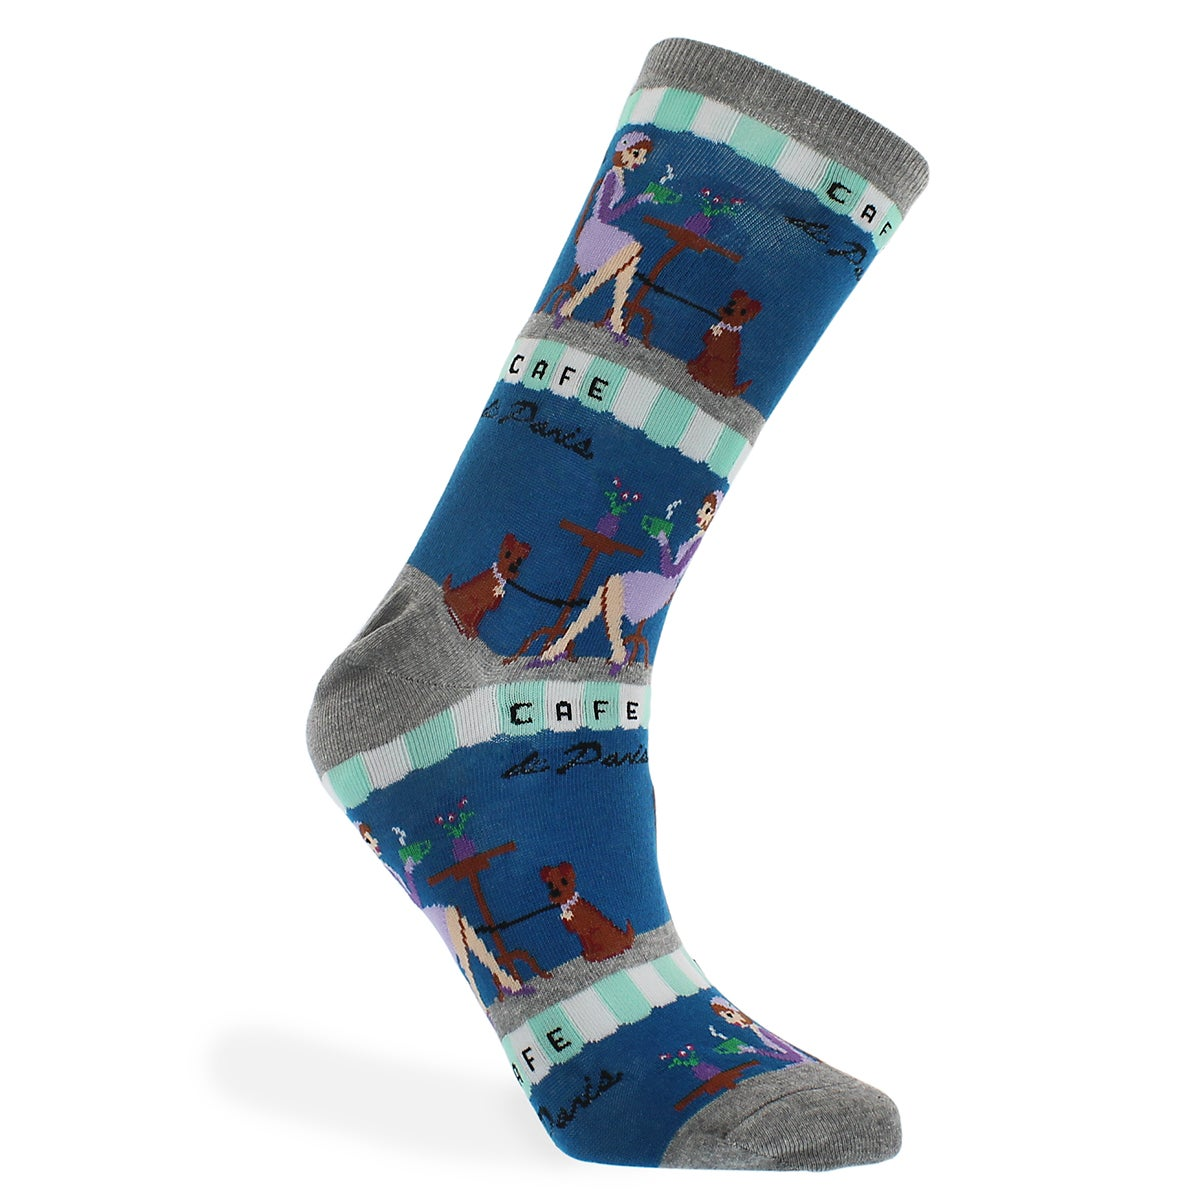 Lds Cafe dark blue printed sock